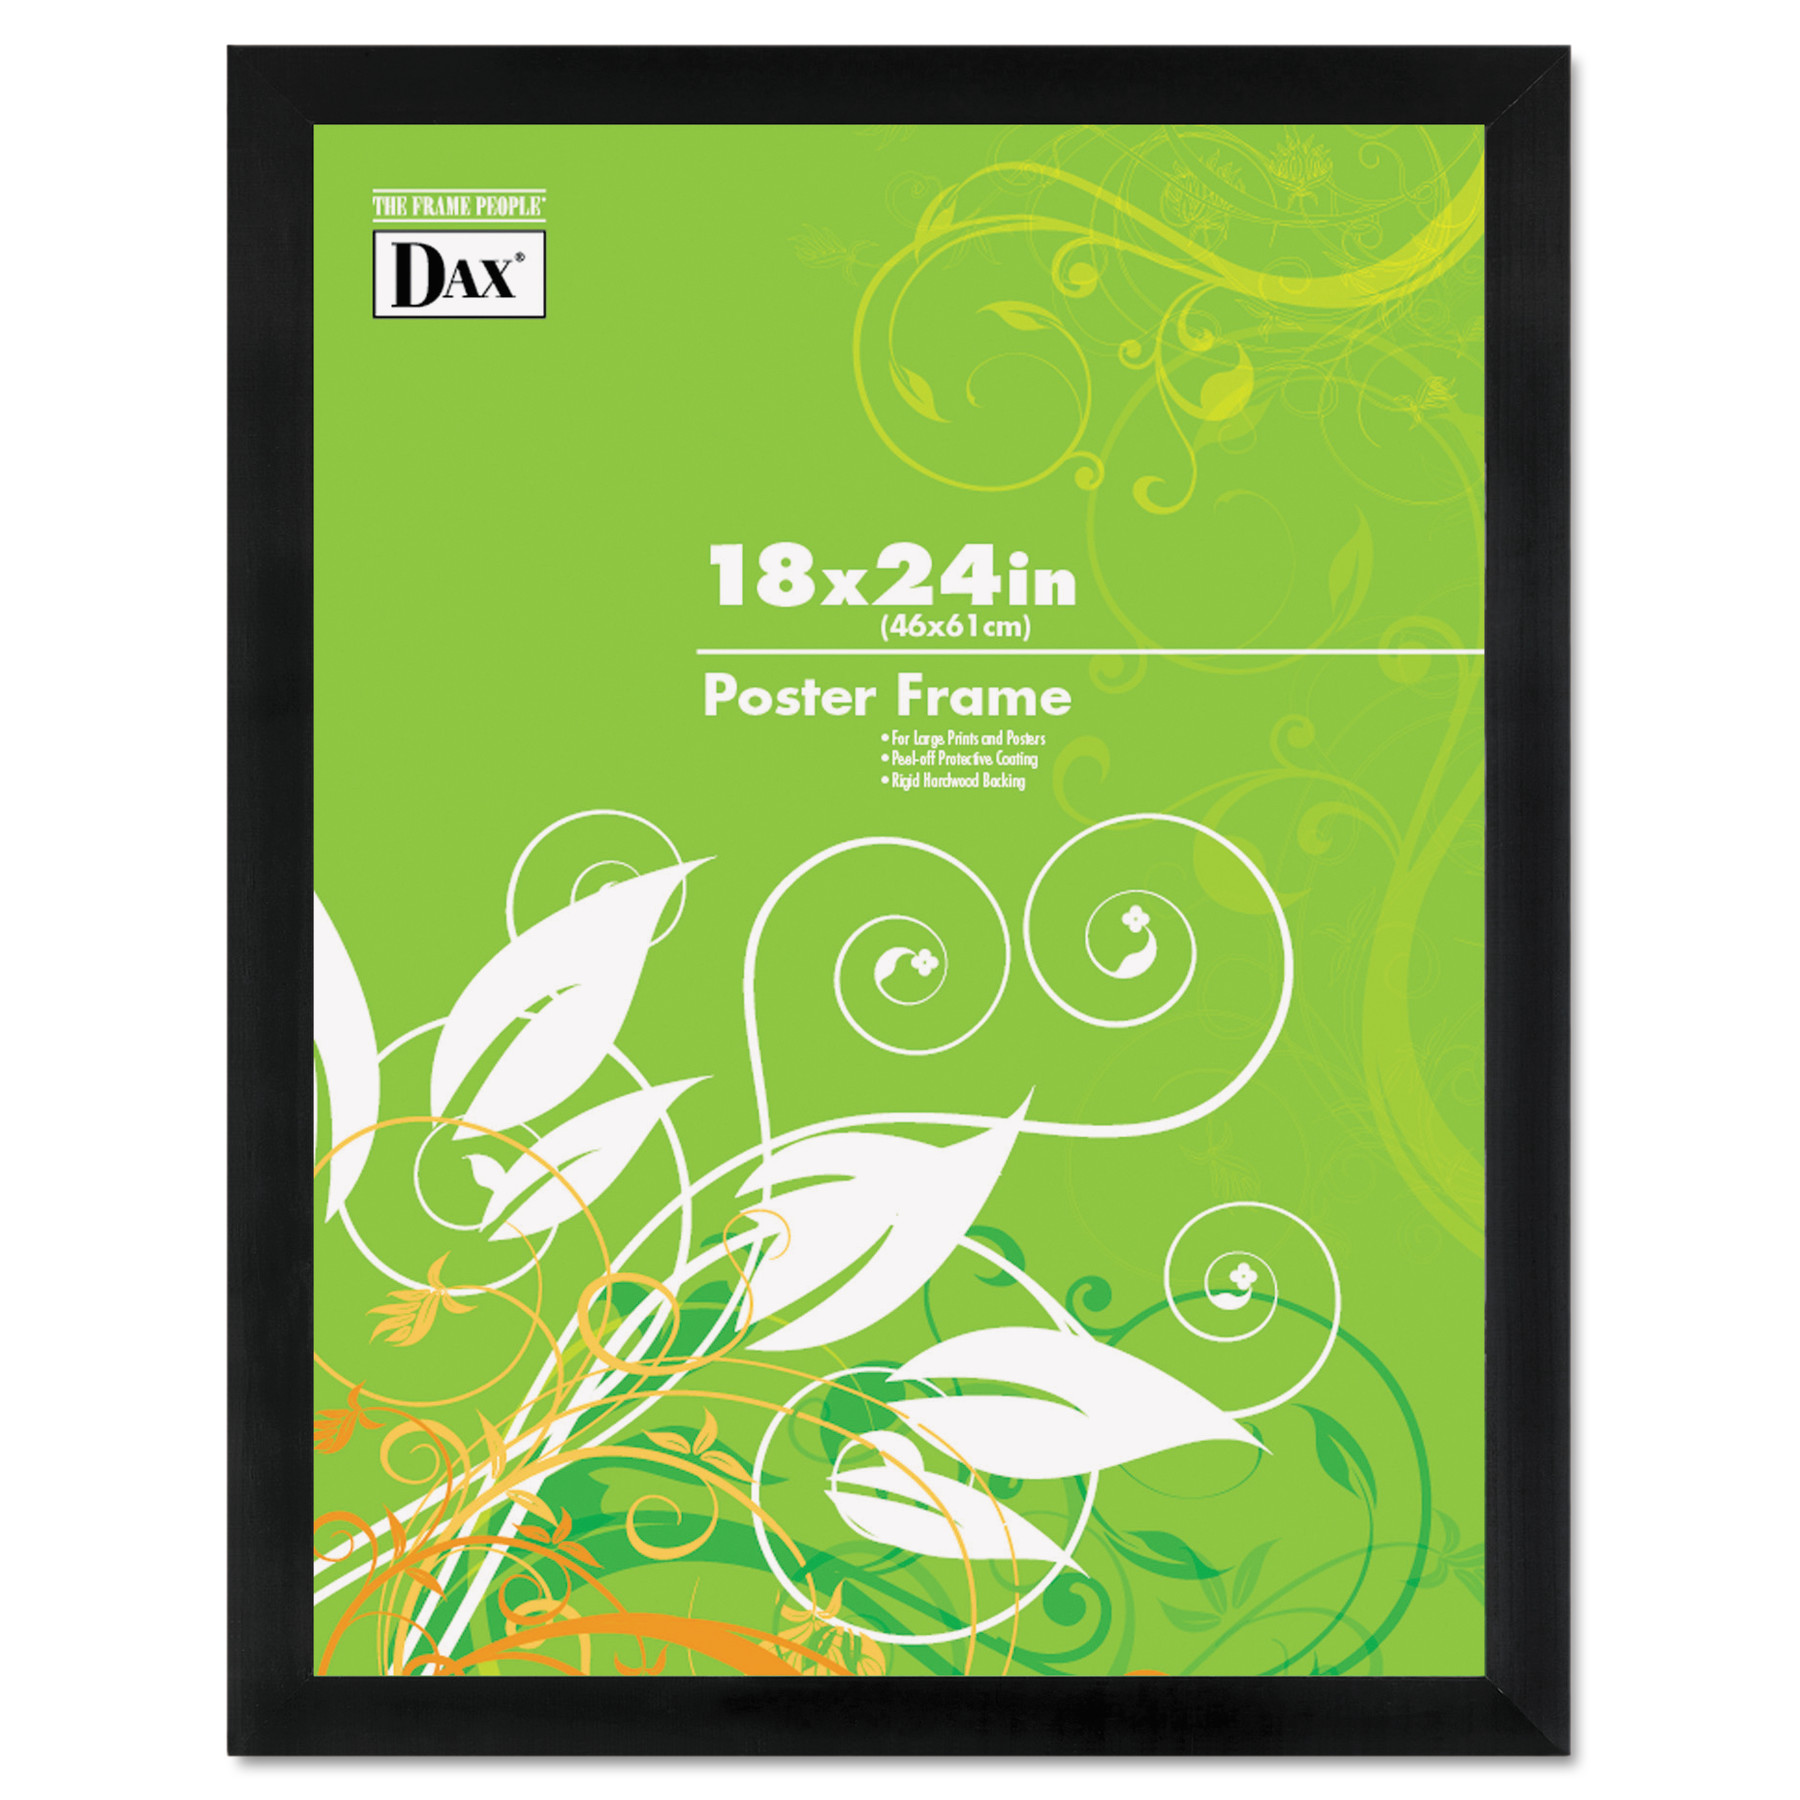 DAX Black Solid Wood Poster Frames w Plastic Window, Wide Profile, 18 x 24 by DAX MANUFACTURING INC.